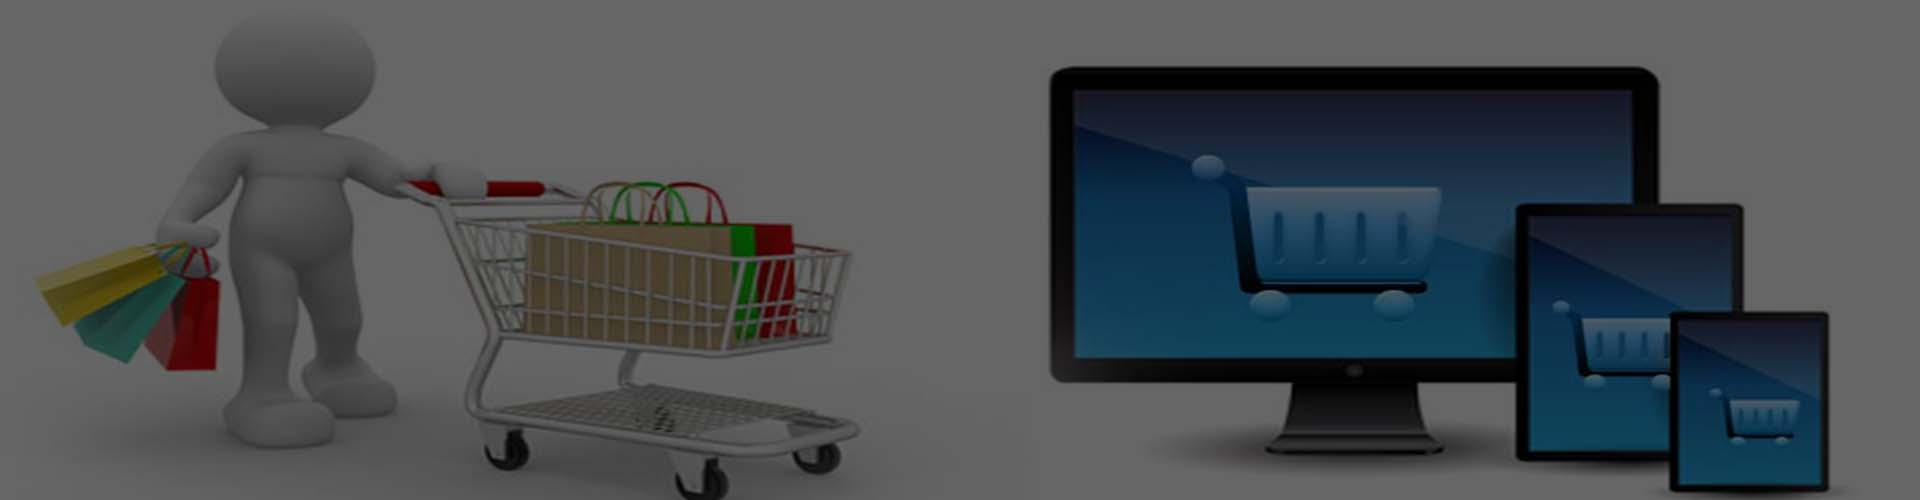 e commerce solution company in chennai